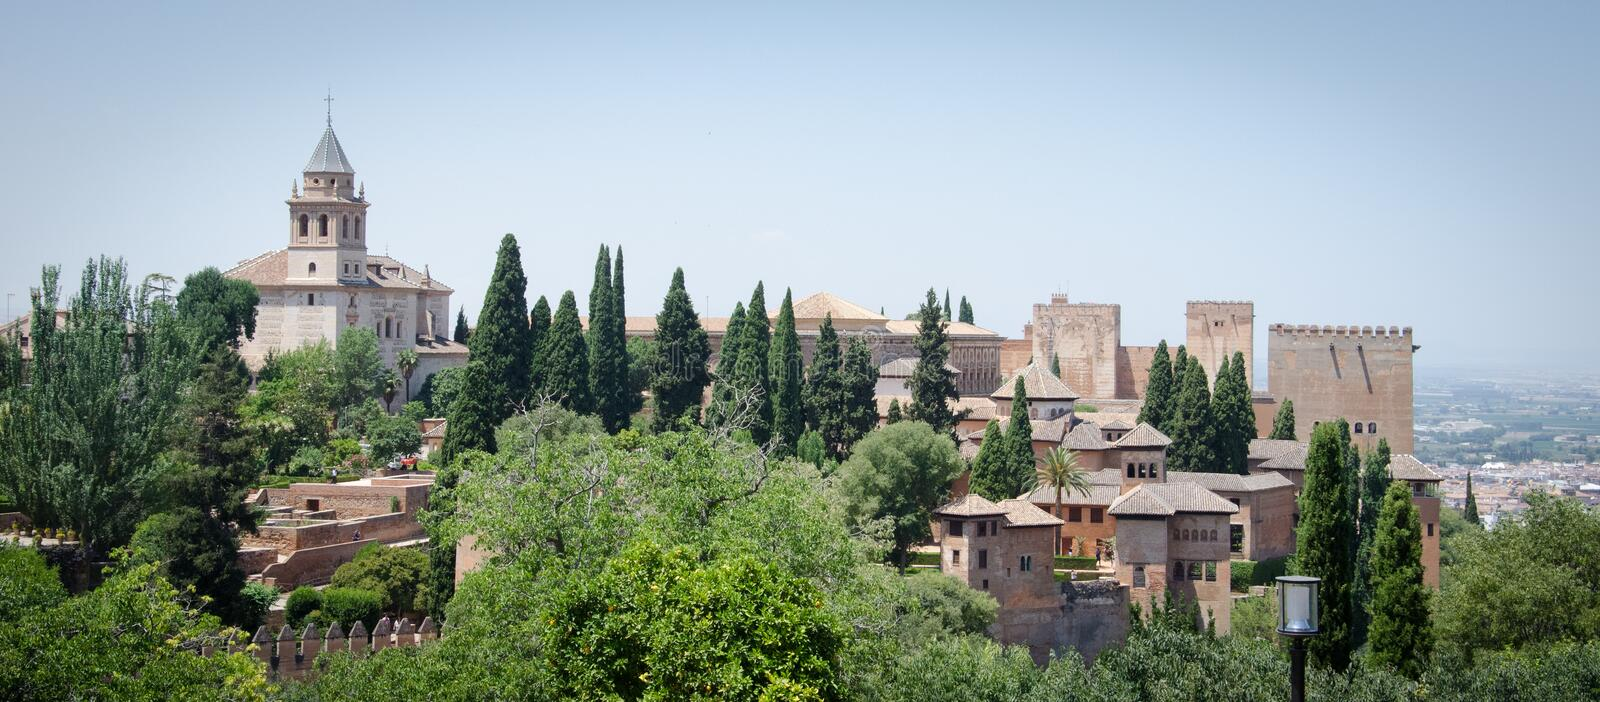 Details of the Generalife palace from the Alhambra palace in Granada. Spain stock photos